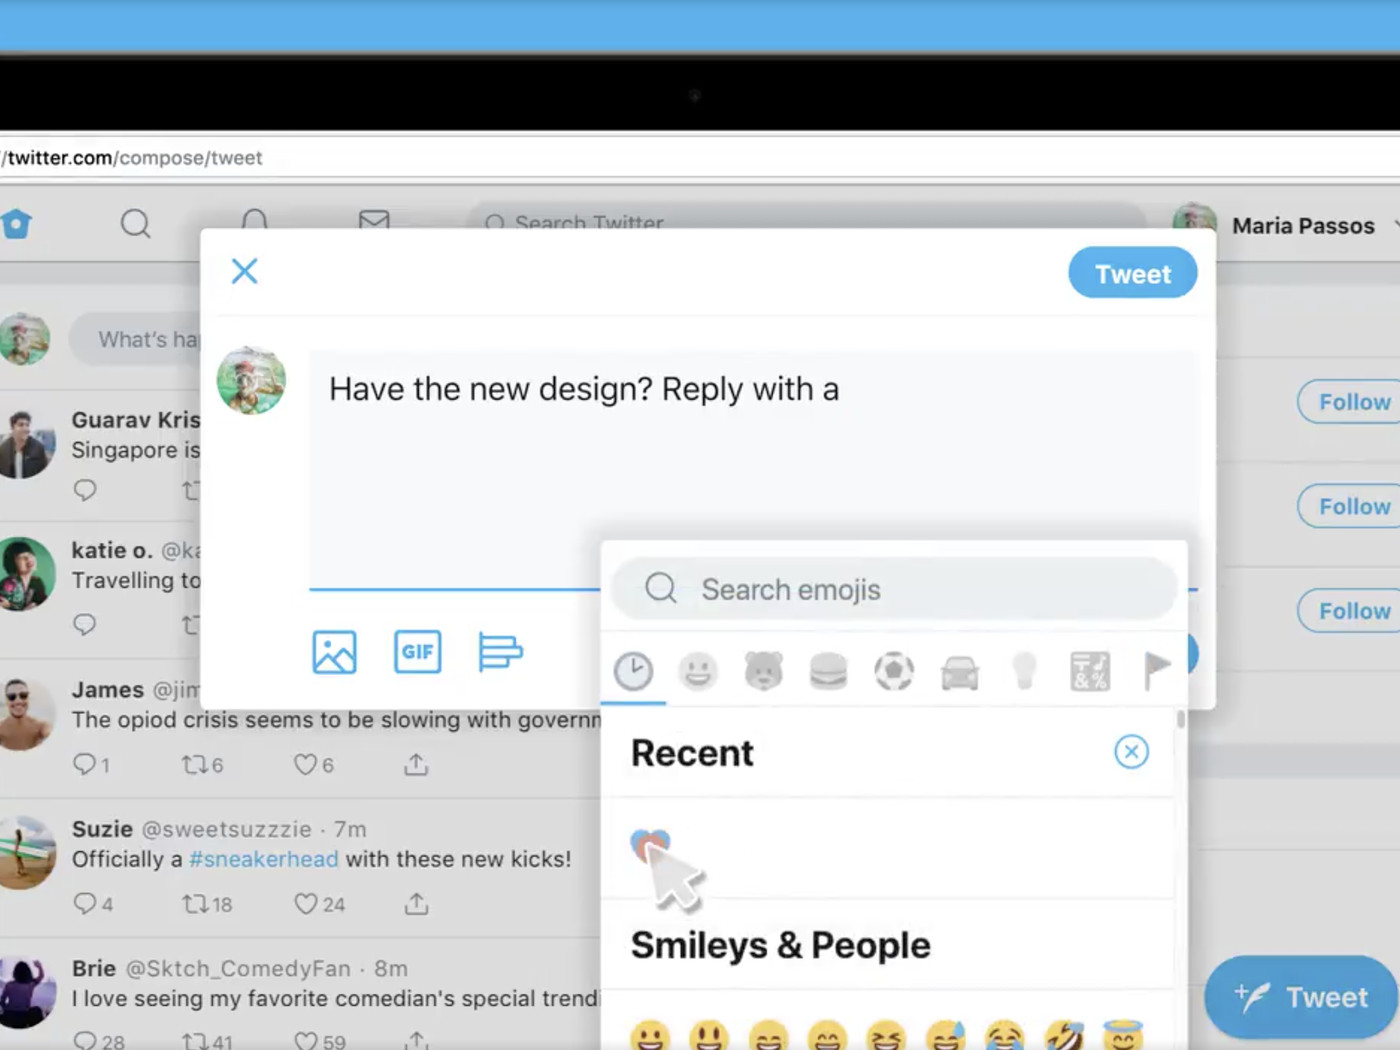 Twitter is rolling out a new web interface, including an